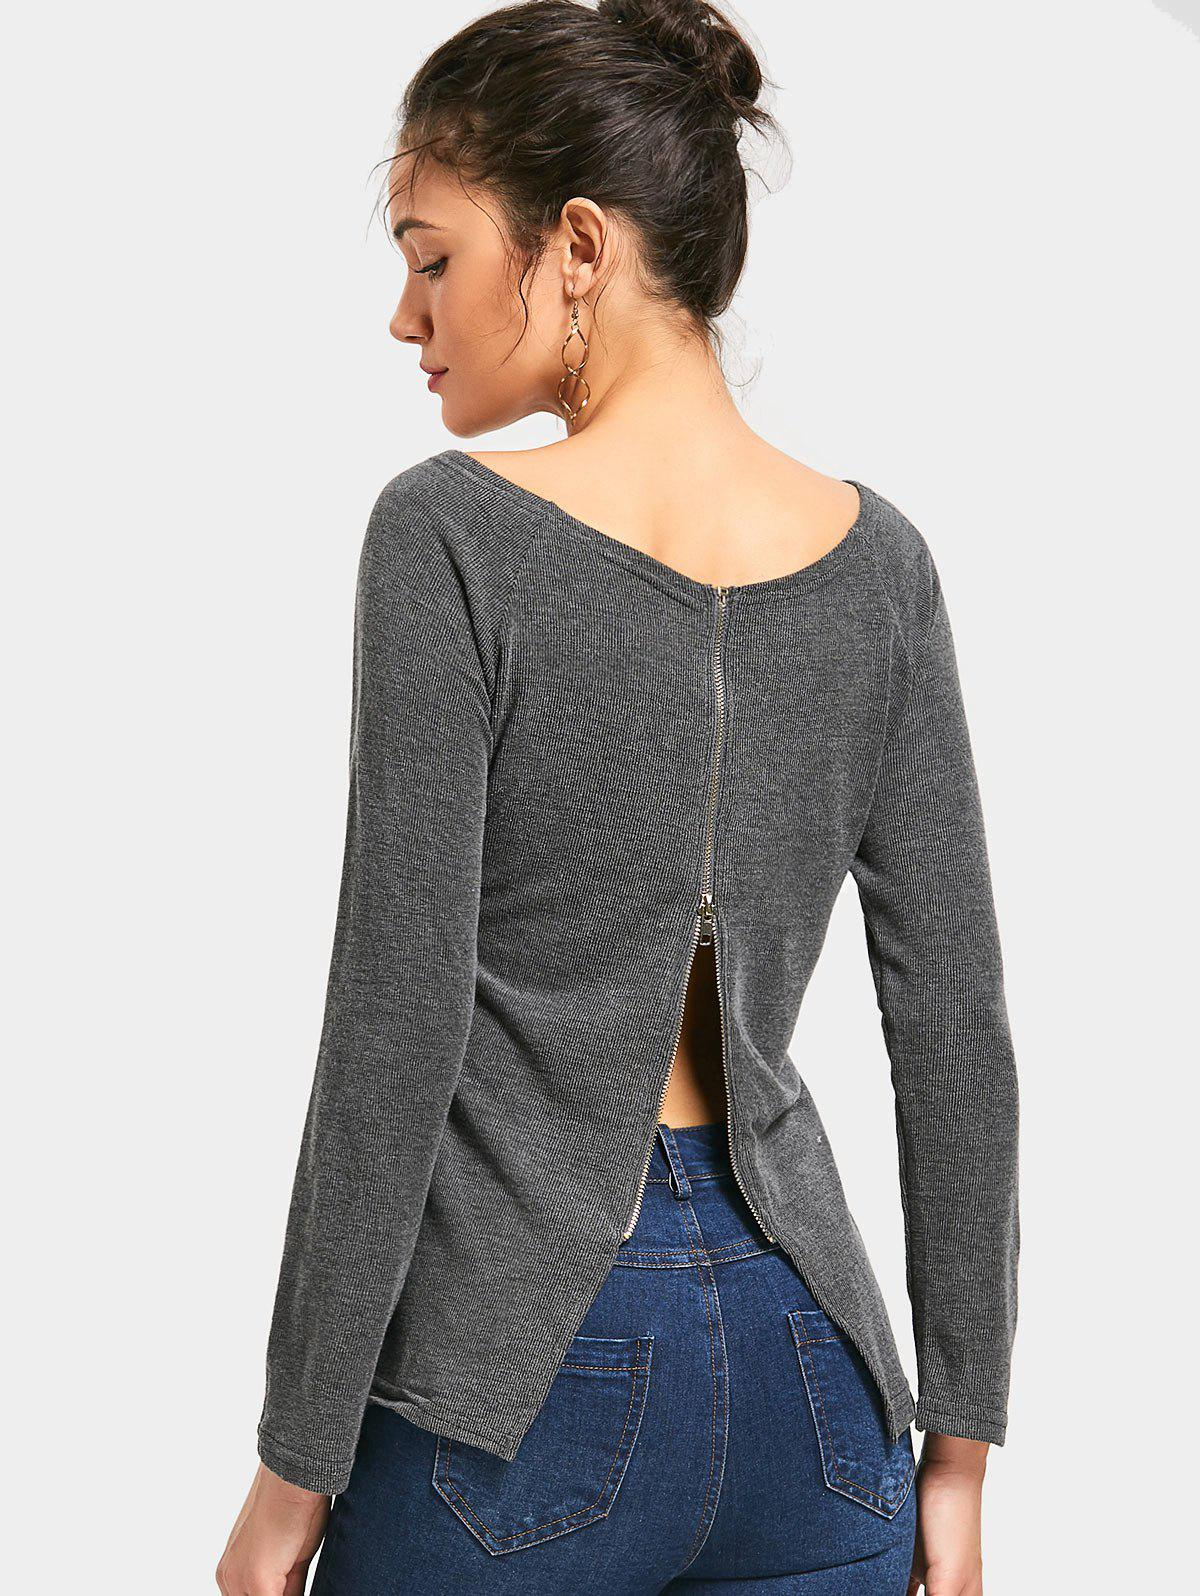 Boat Neck Back Zipper Knitted Top 228689905